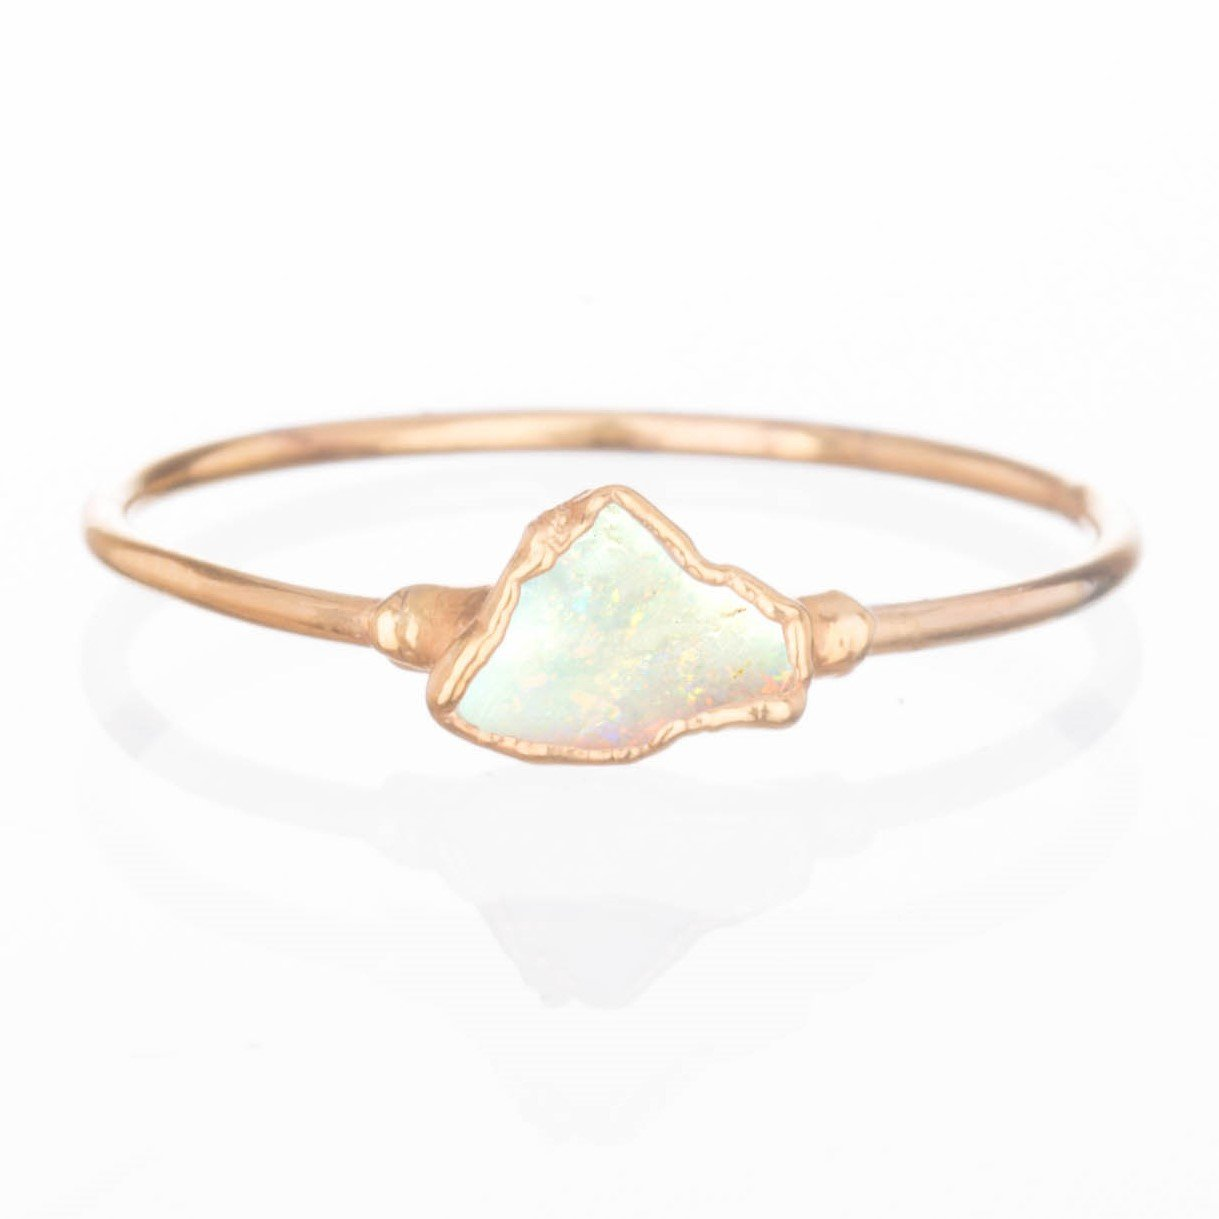 5ca7b83423322 Mini Raw Opal Ring, Size 7, Yellow Gold, October Birthstone Stacking Ring